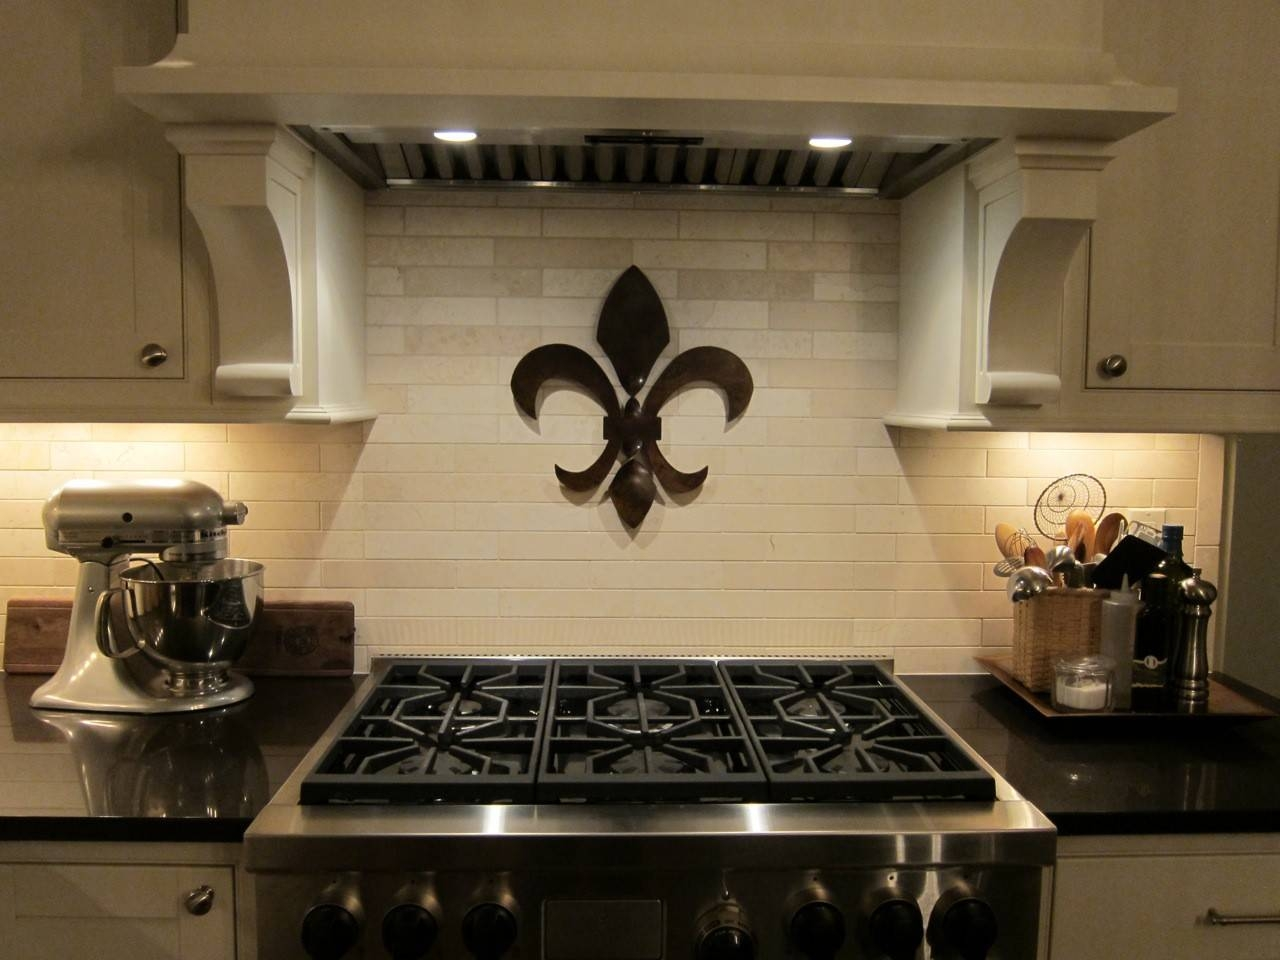 Fleur De Lis Wall Decor Regarding Current Fleur De Lis Metal Wall Art (View 7 of 25)